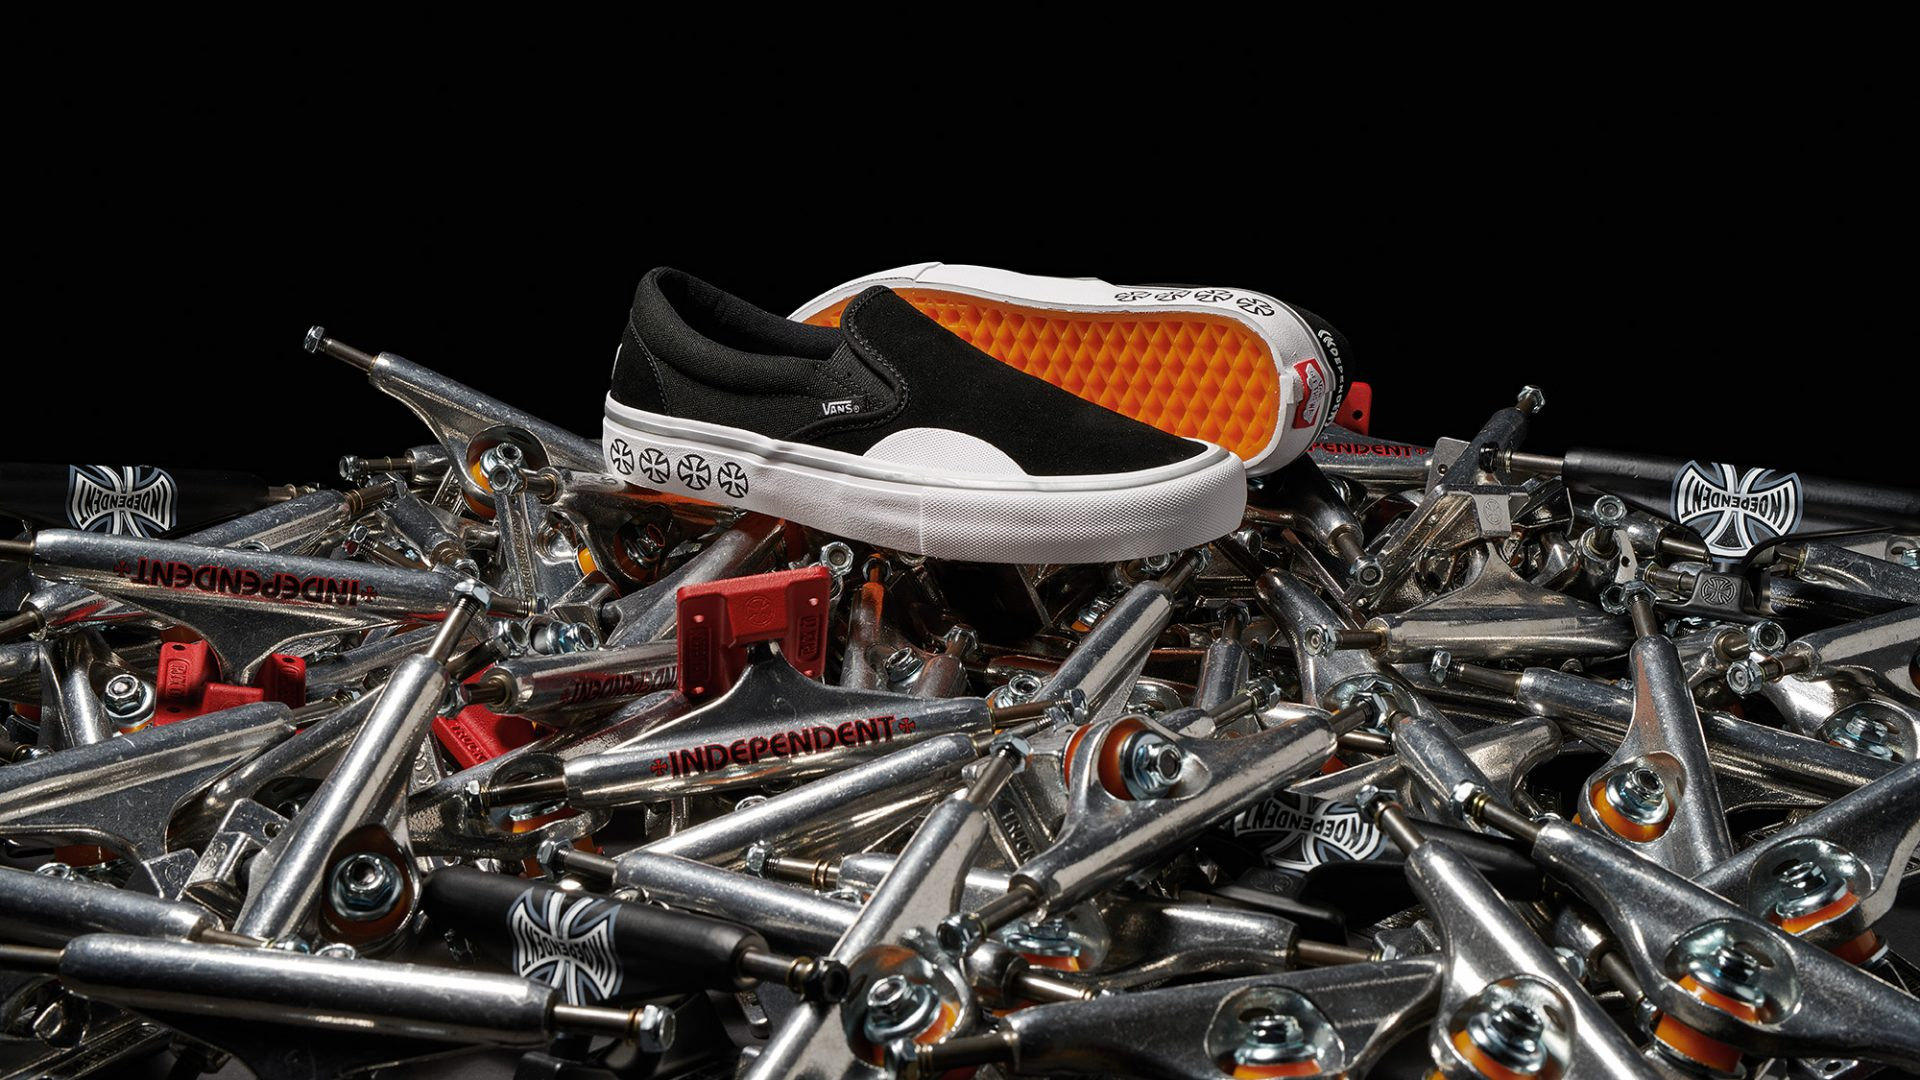 fe5e987442c Vans X Independent Truck Co. Collaboration - New Product ...